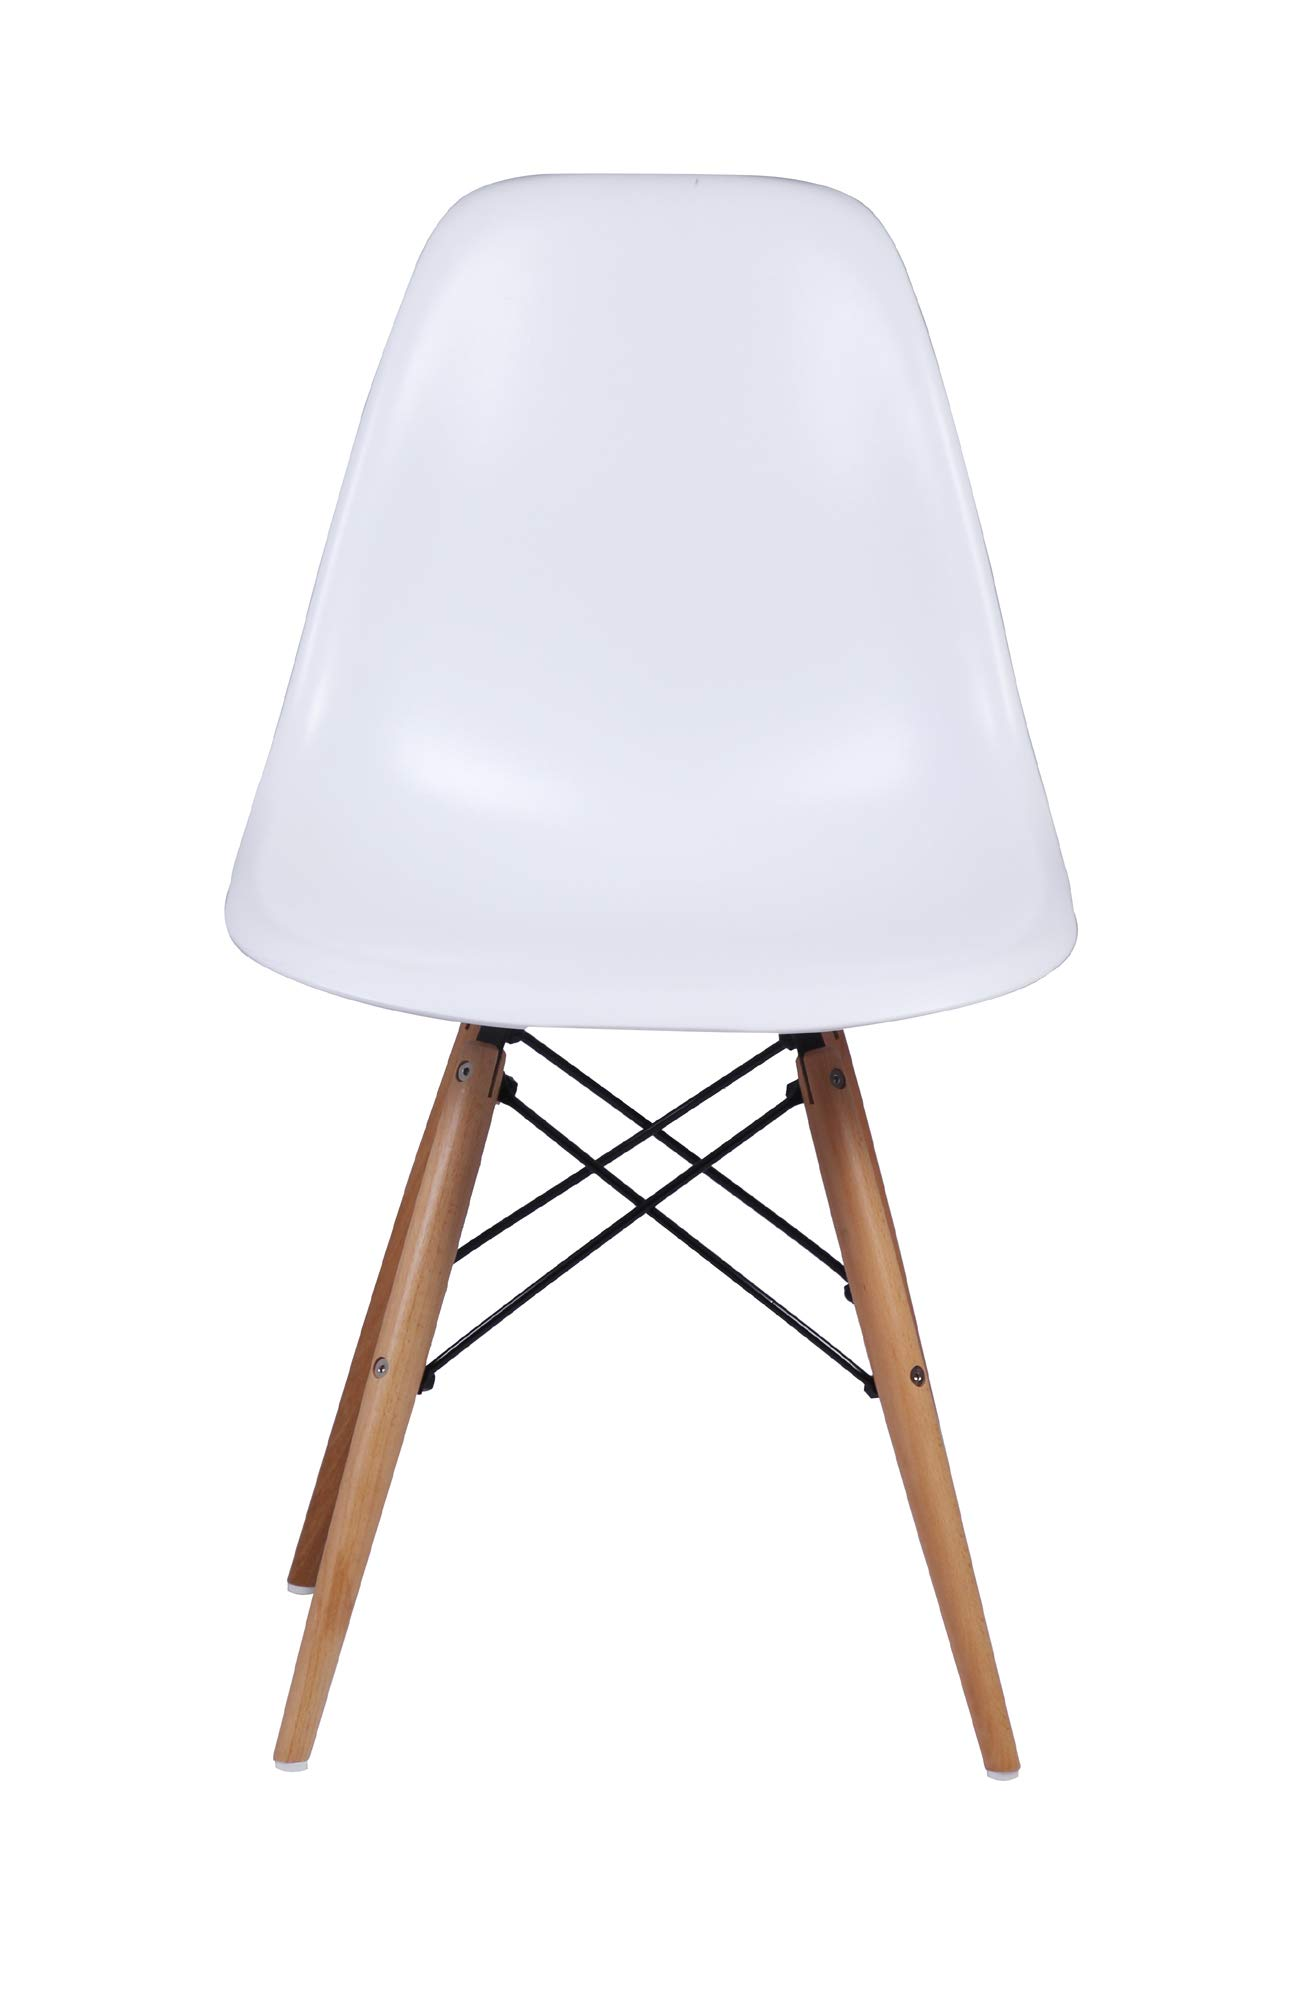 GIA Eames Plastic Armless Chair with Wooden Legs, White, 1-Pack